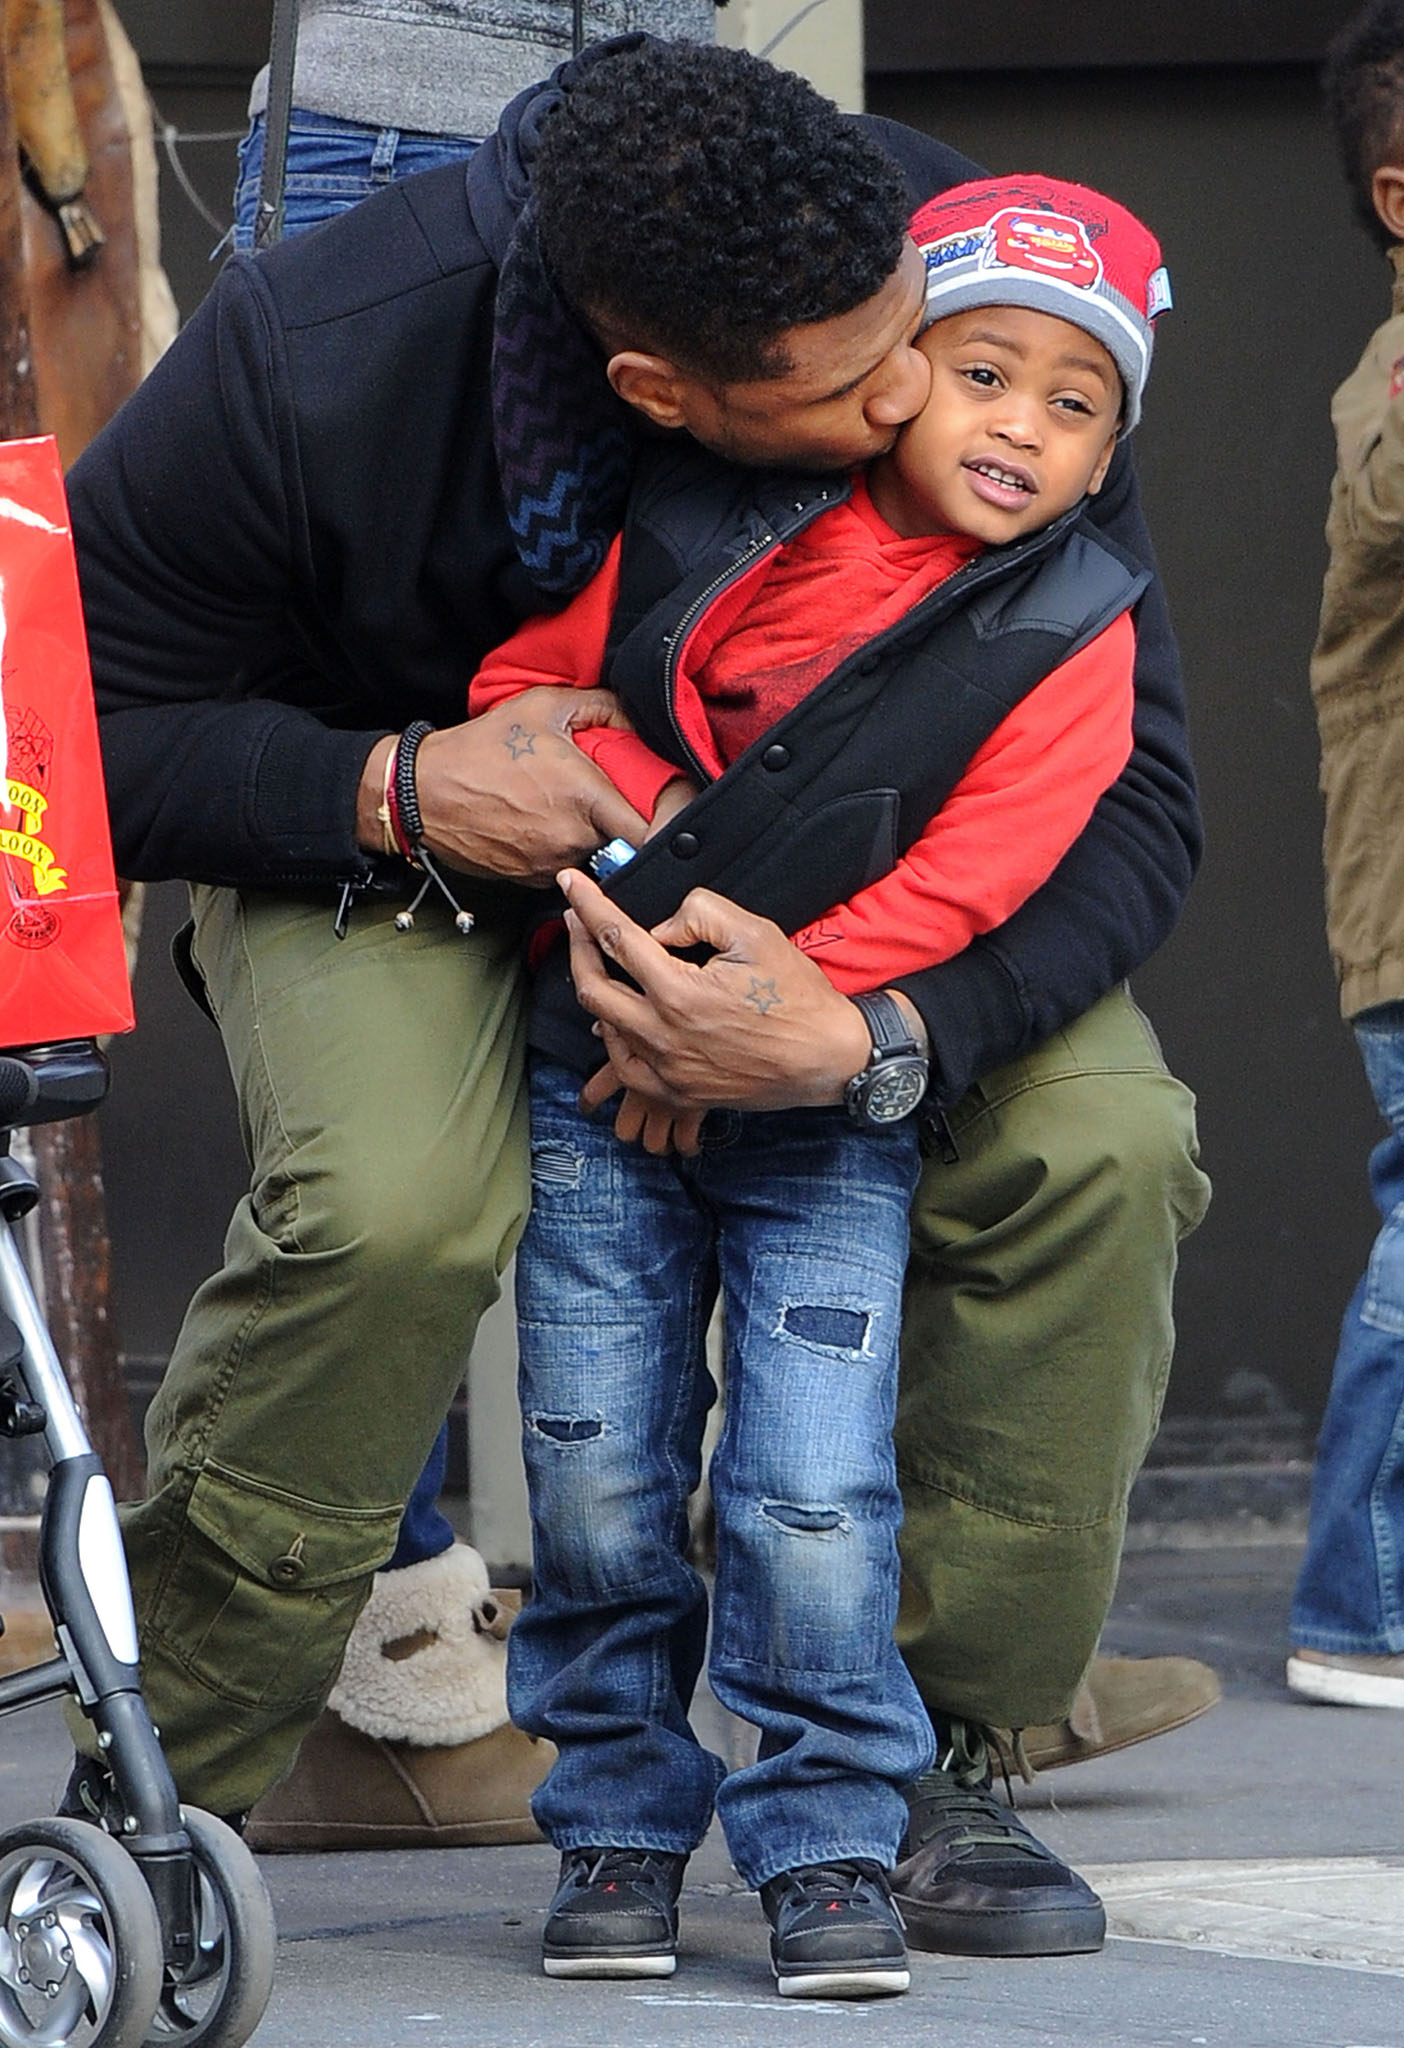 Usher and his son Usher Raymond V (Splash News)